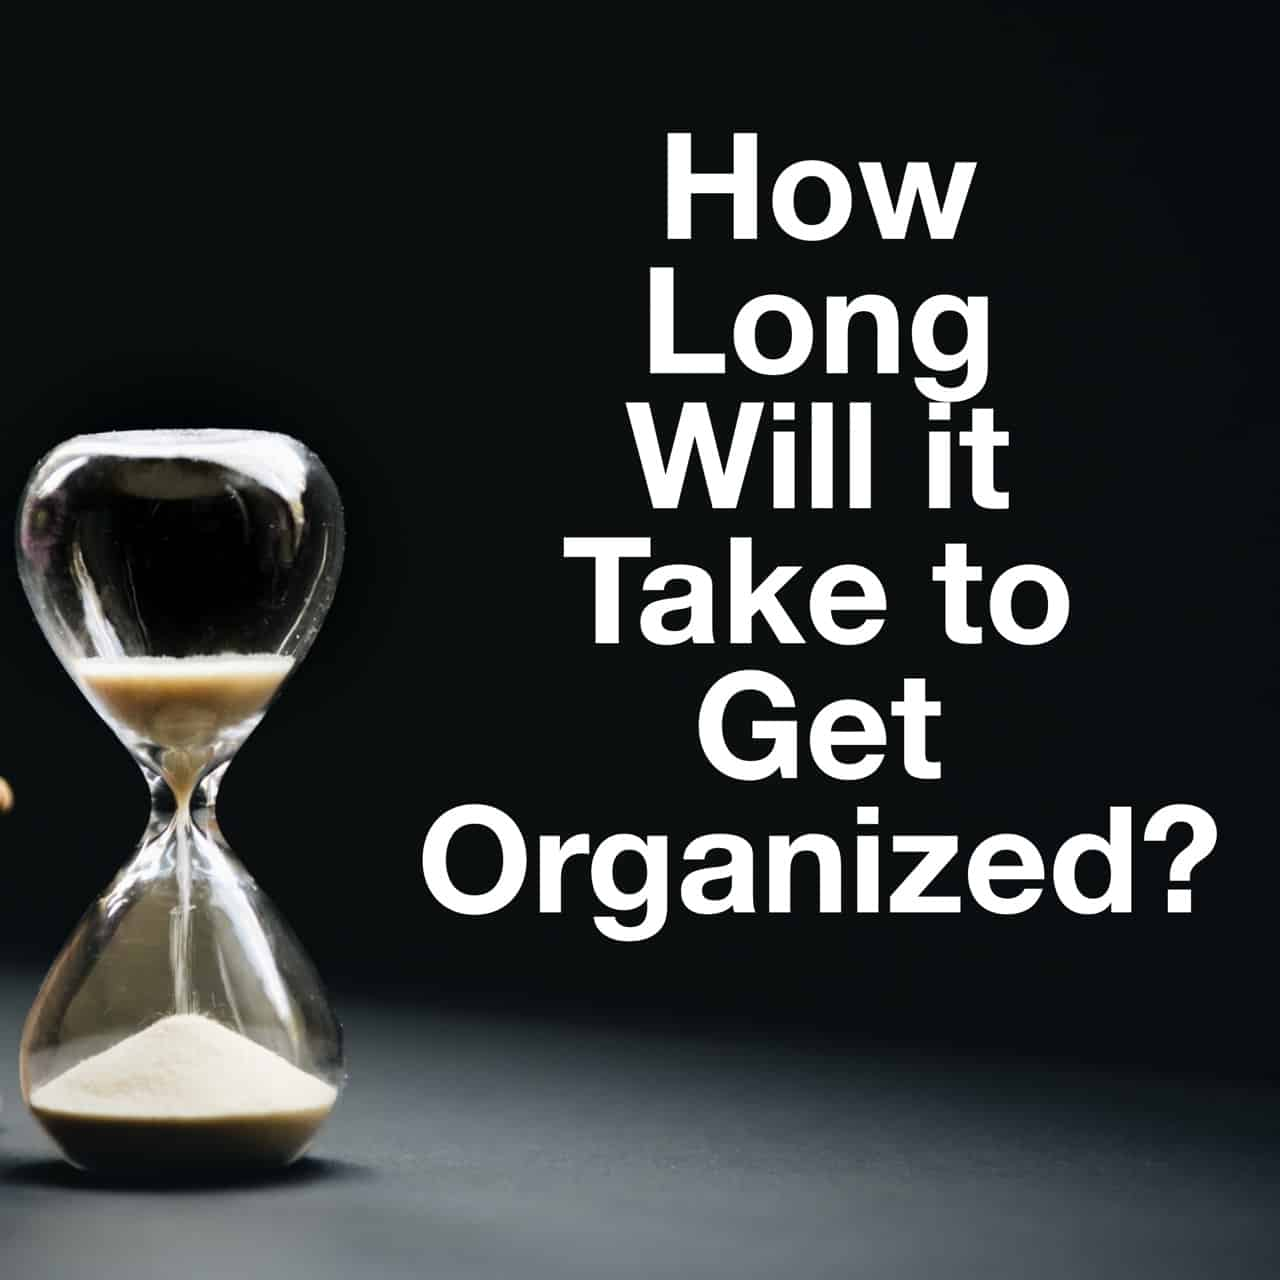 How long will it take to get organized? title